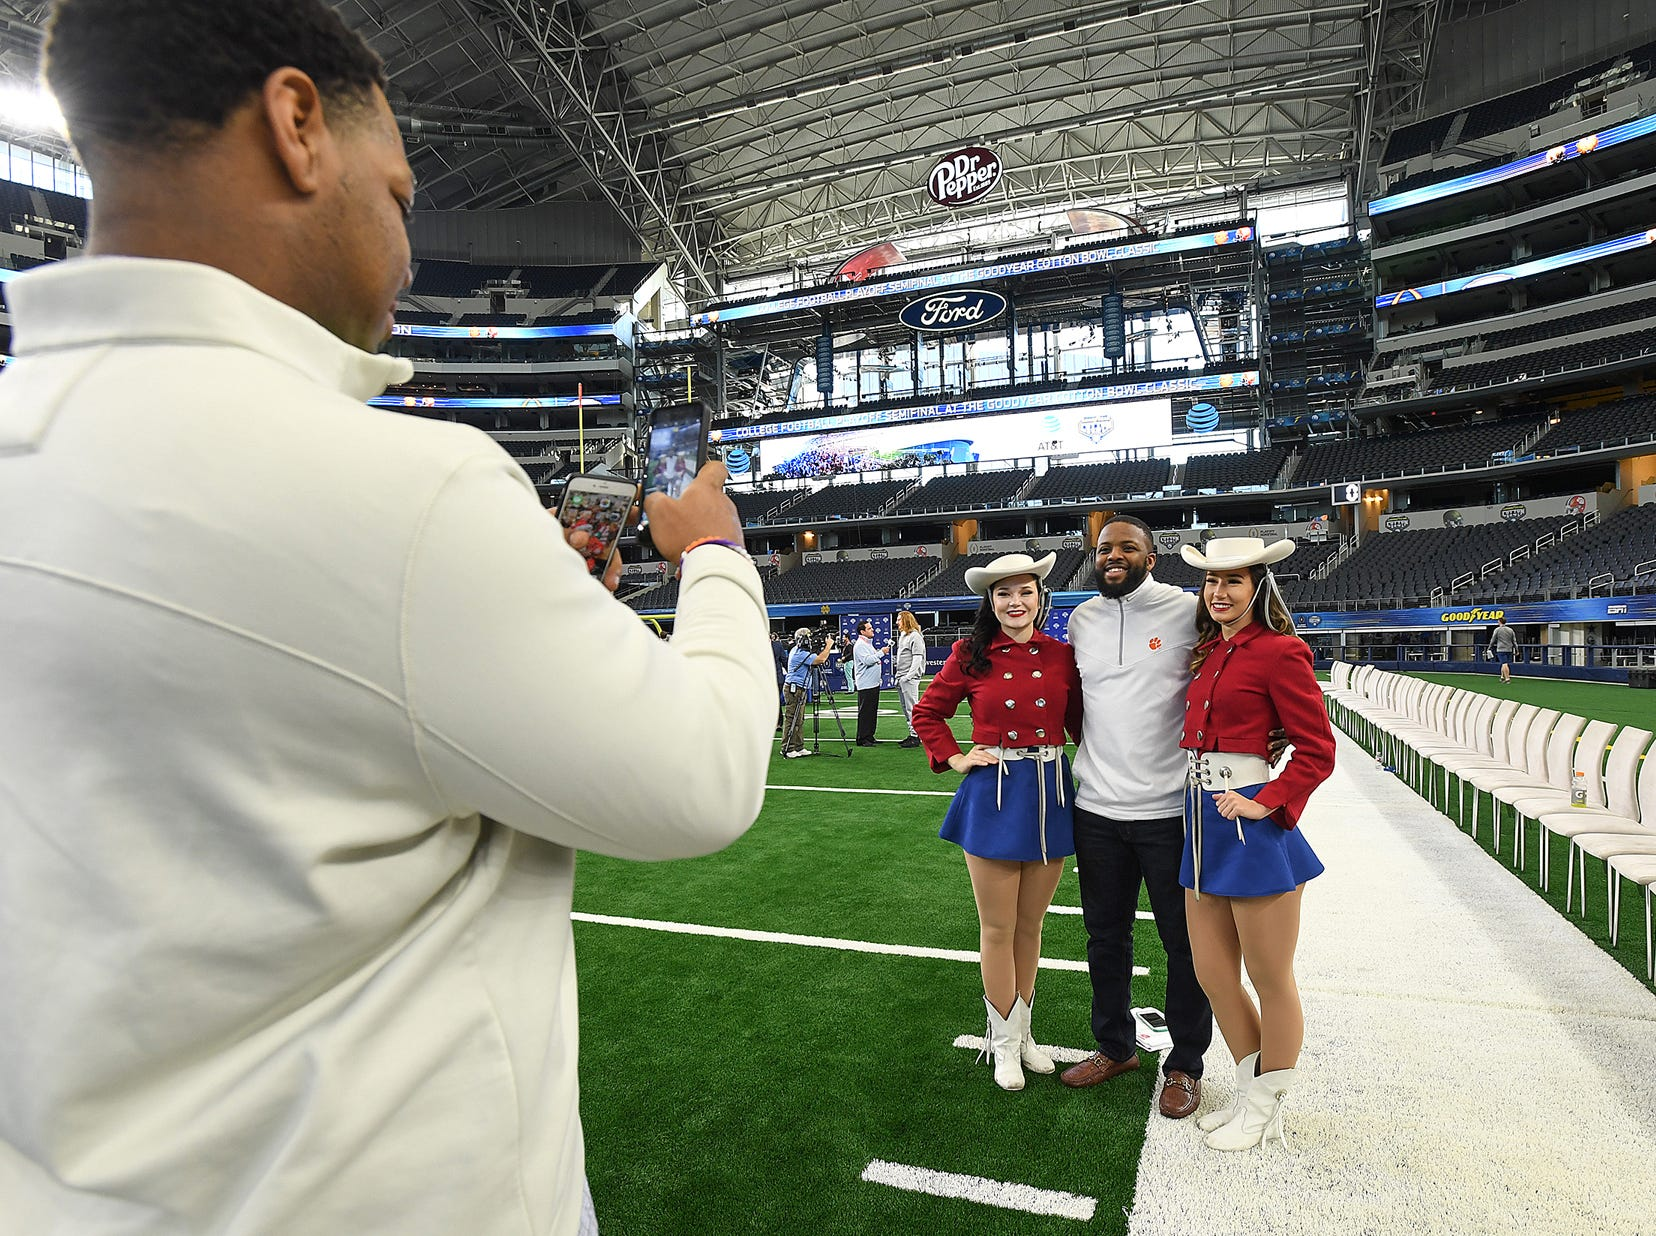 Clemson grad assistant Deandre McDaniel poses with cow girls during the Tigers Cotton Bowl media day at AT&T Stadium in Arlington, TX Thursday, December 27, 2018.